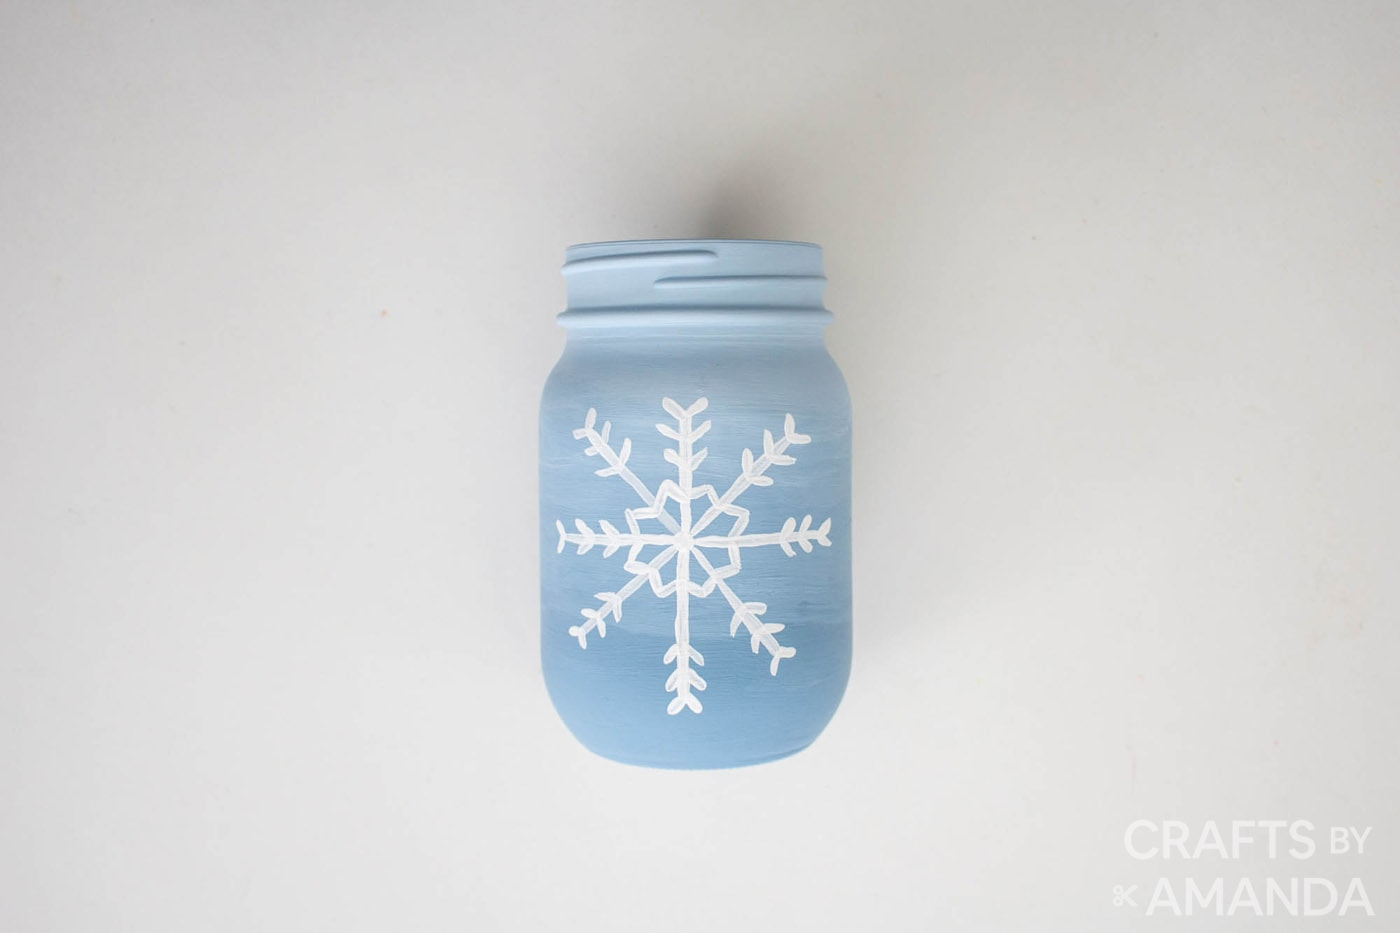 snowflake painted on blue jar